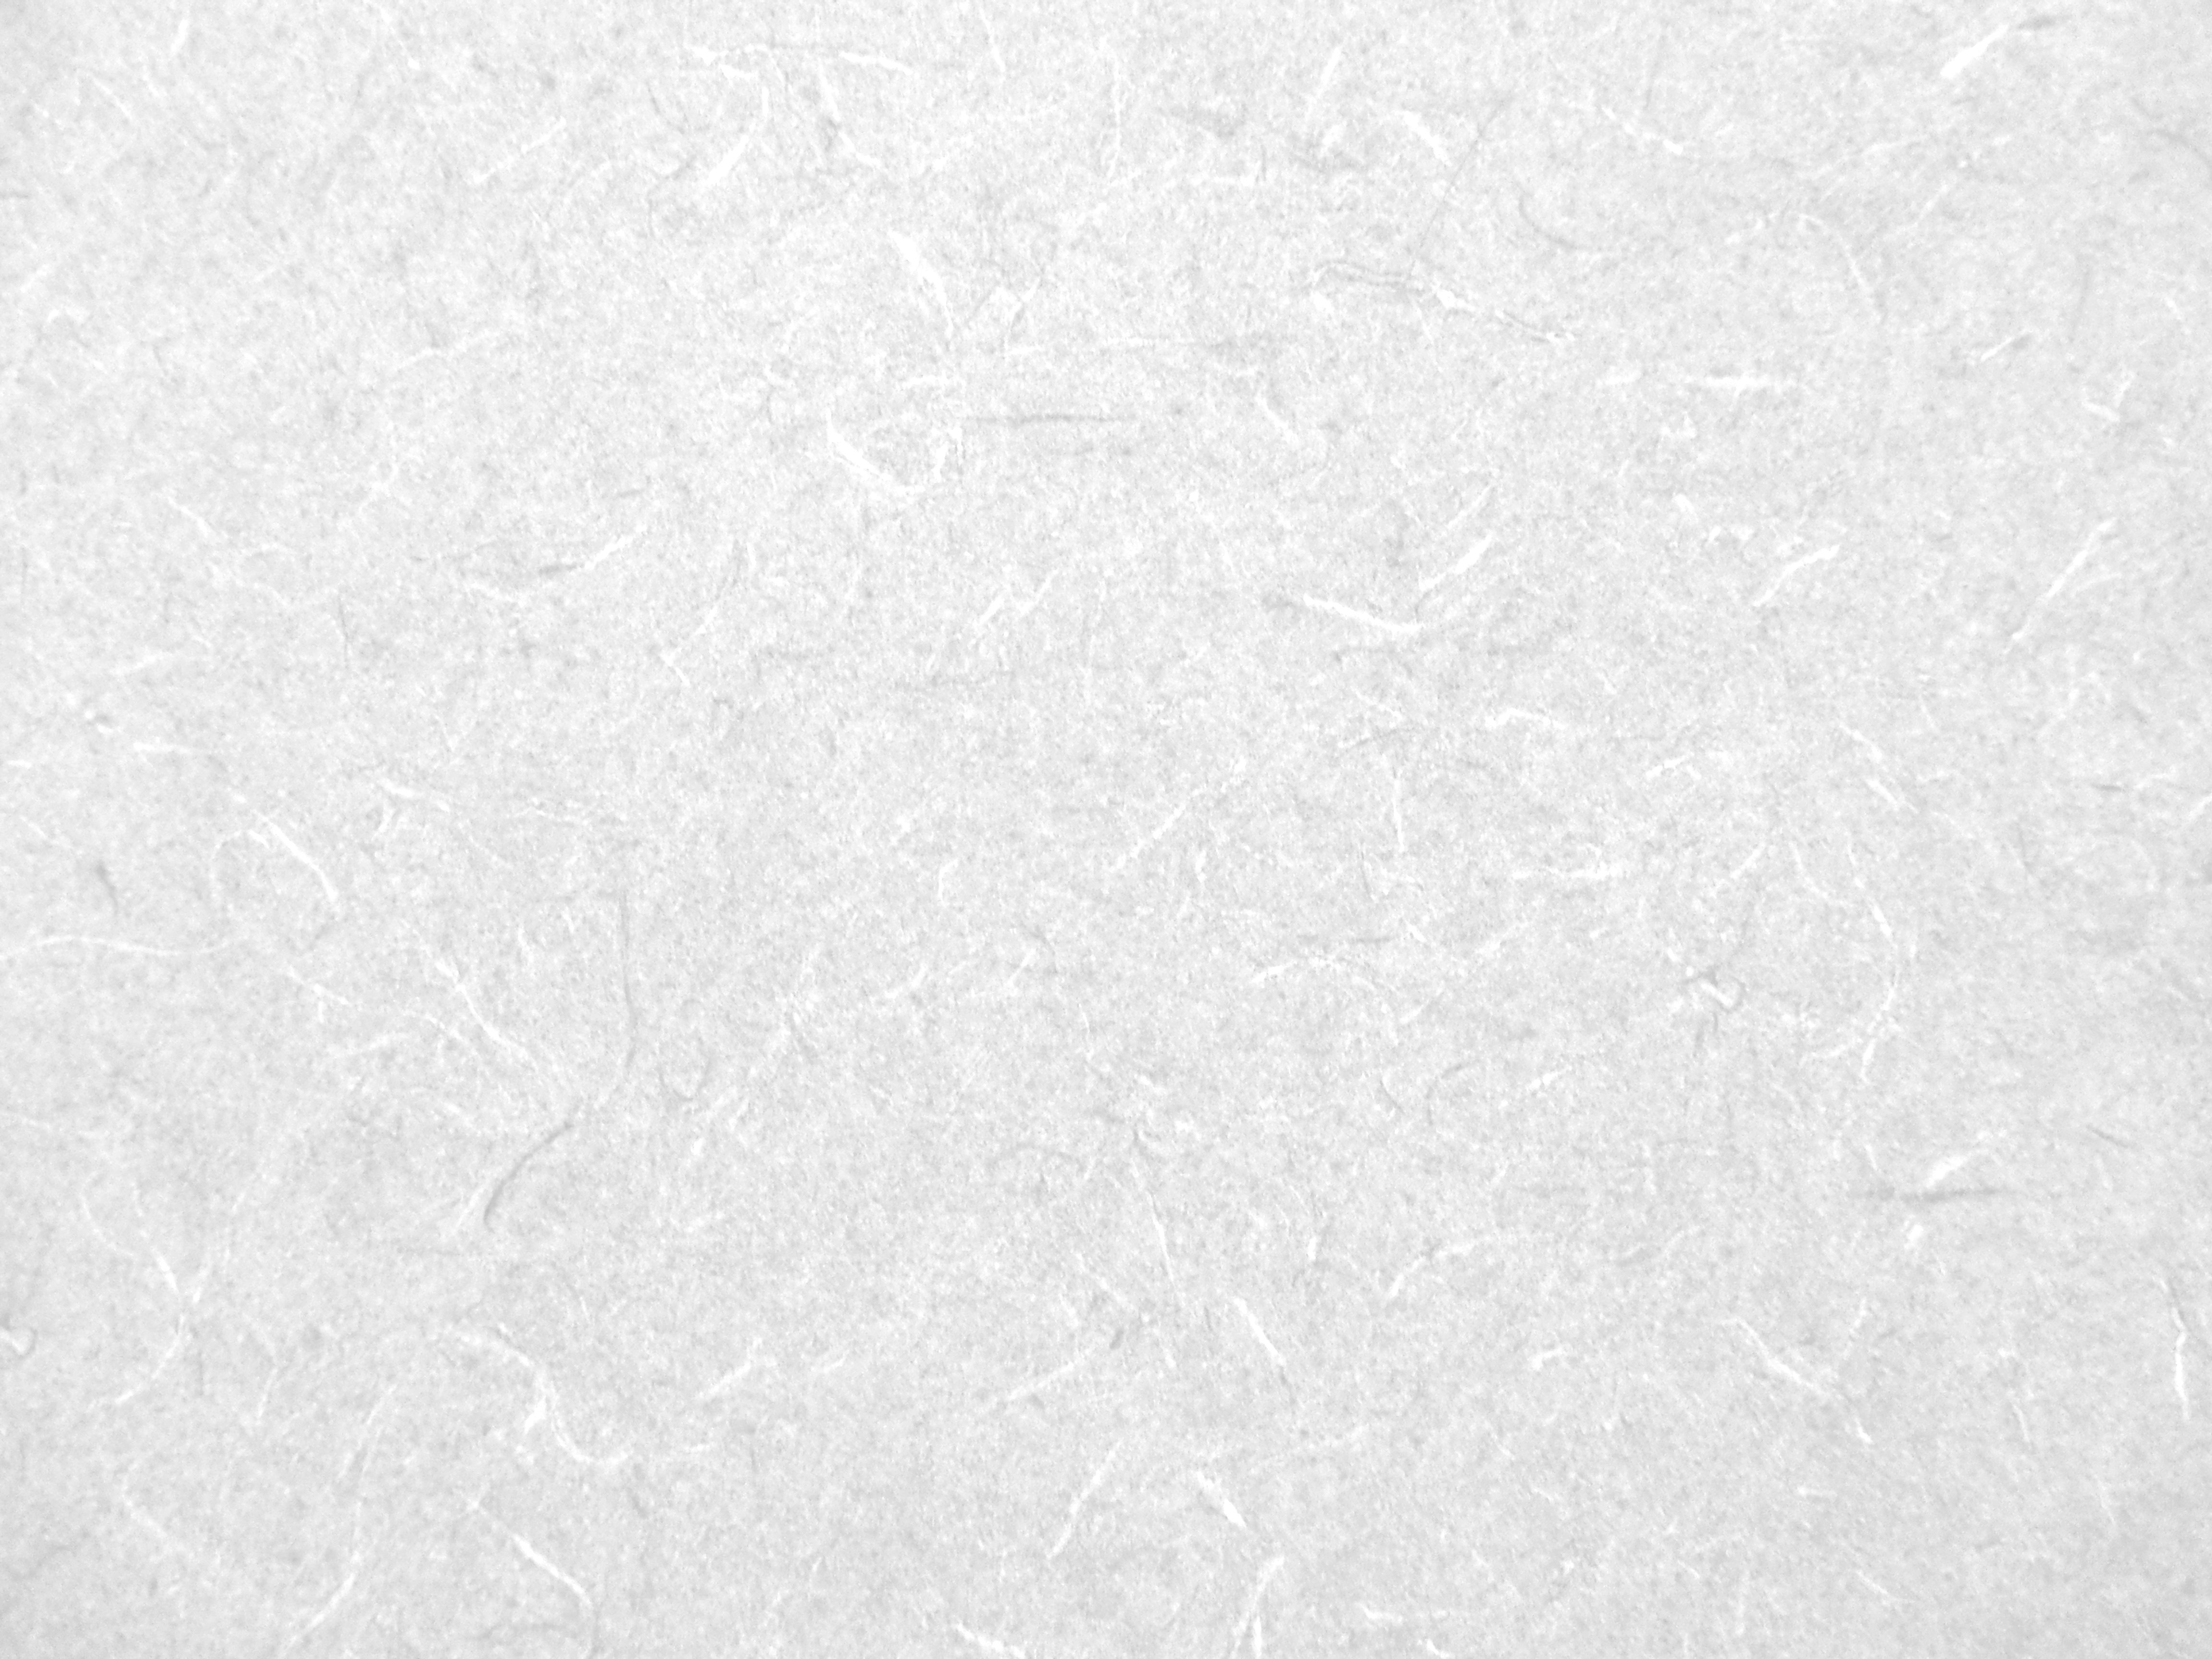 White Abstract Pattern Laminate Countertop Texture Picture 4608x3456